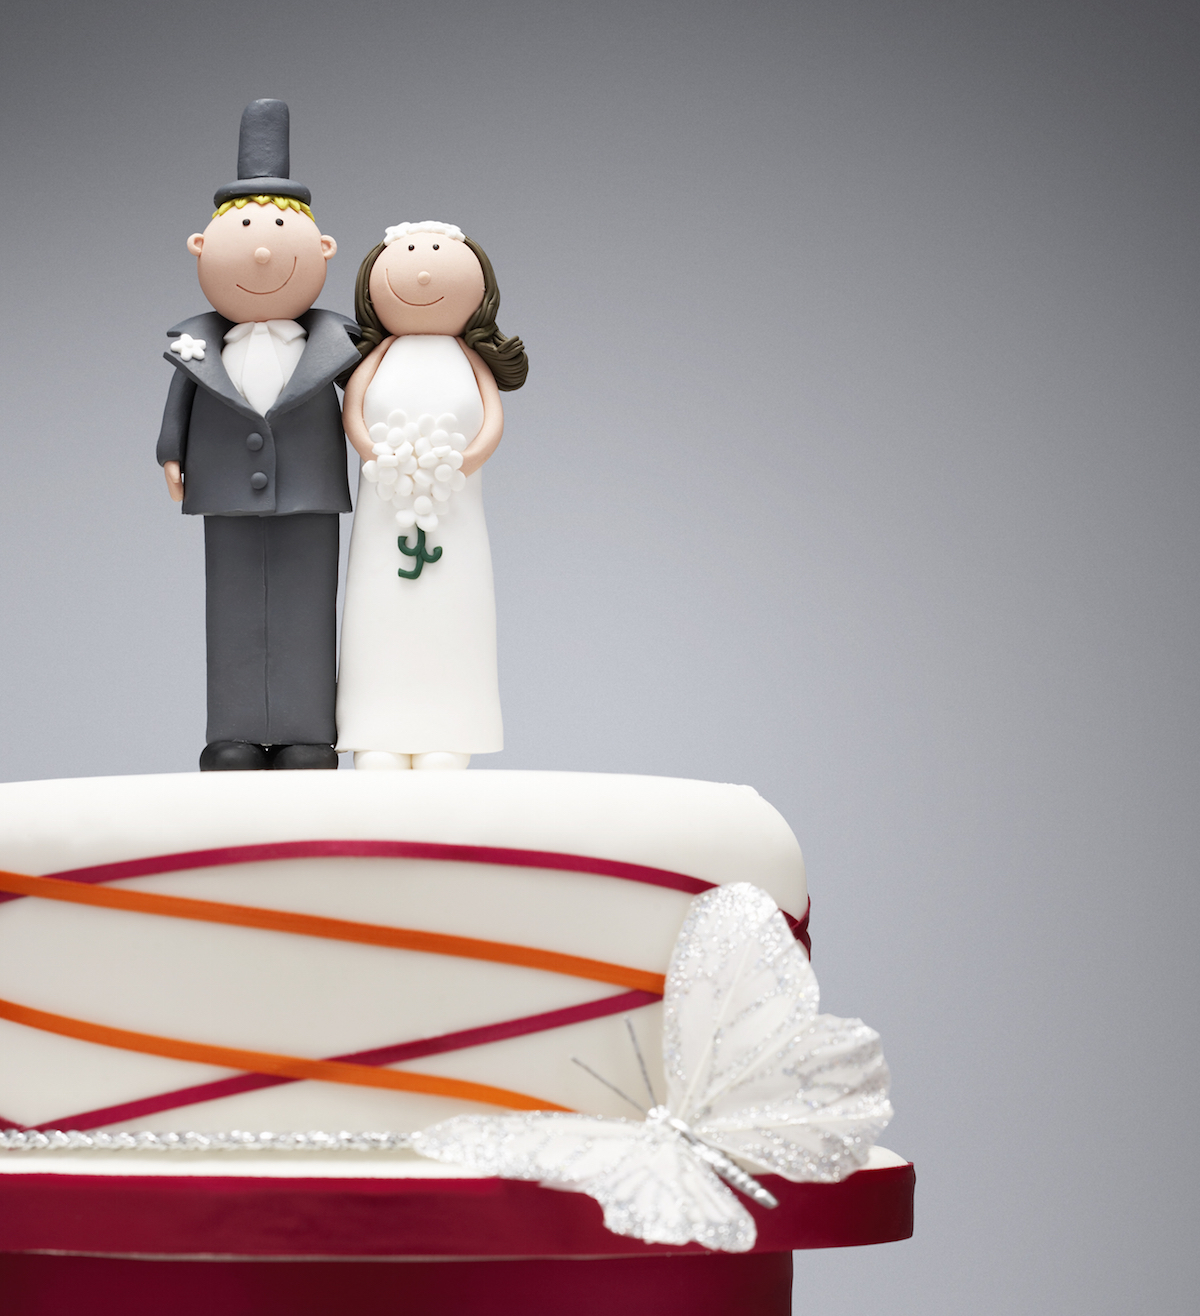 Comical Bride And Groom Figurines On Top Of Wedding Cake Via Shutterstock